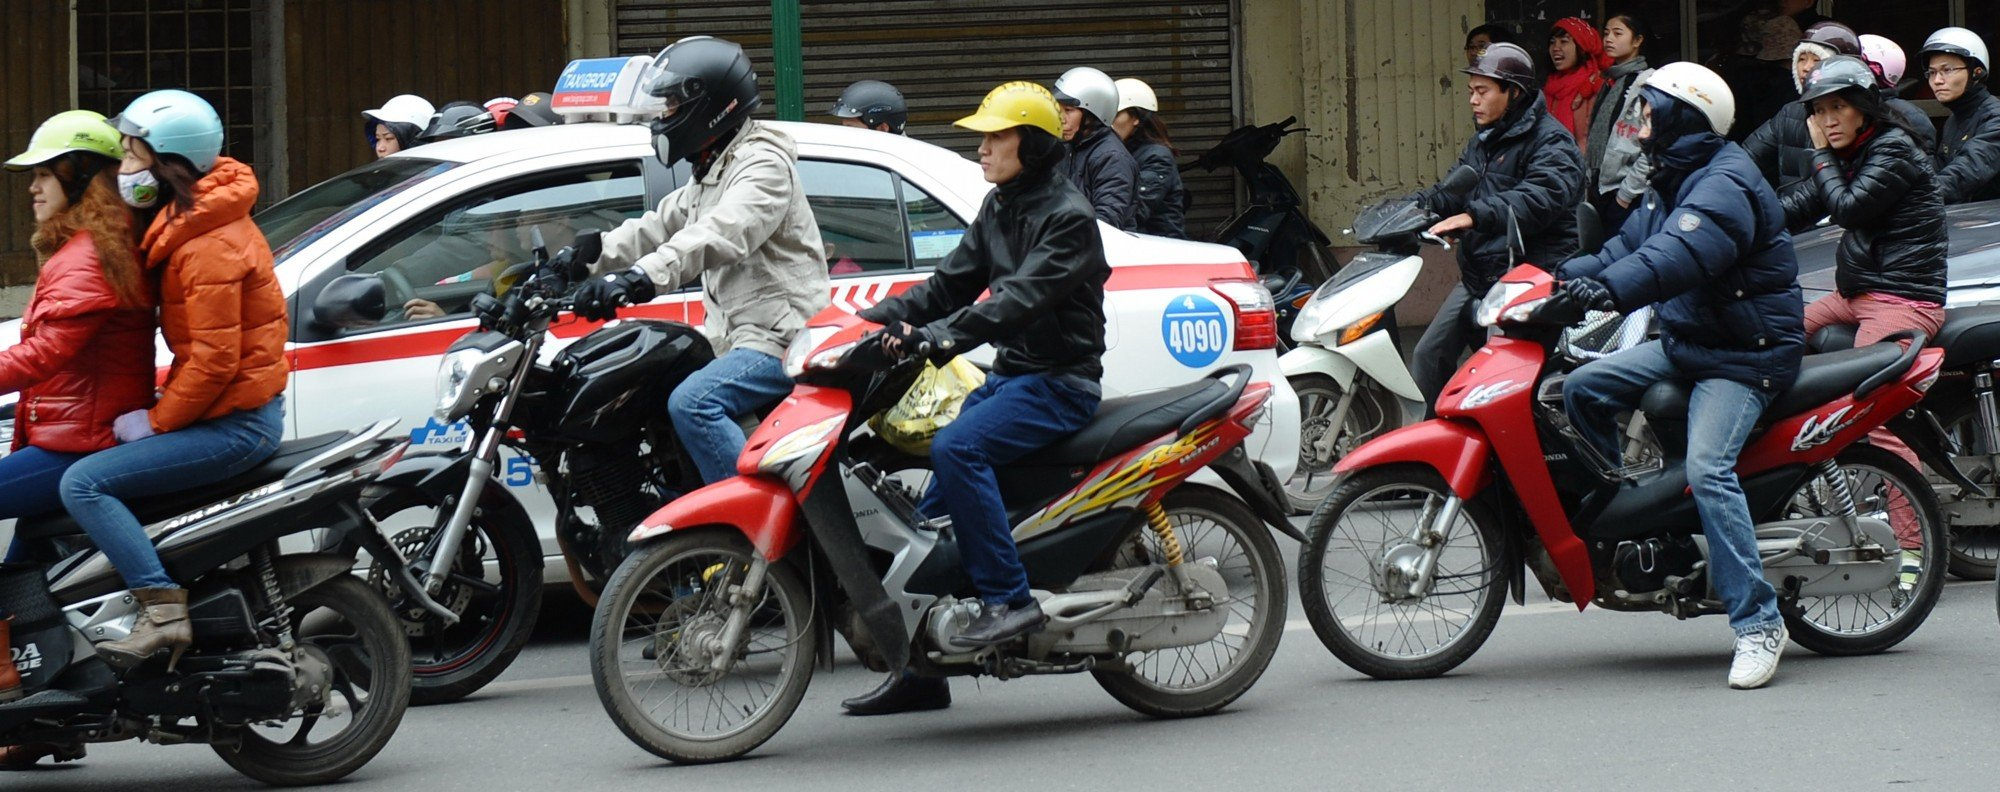 Motorcycles in Hanoi. Photo: AFP